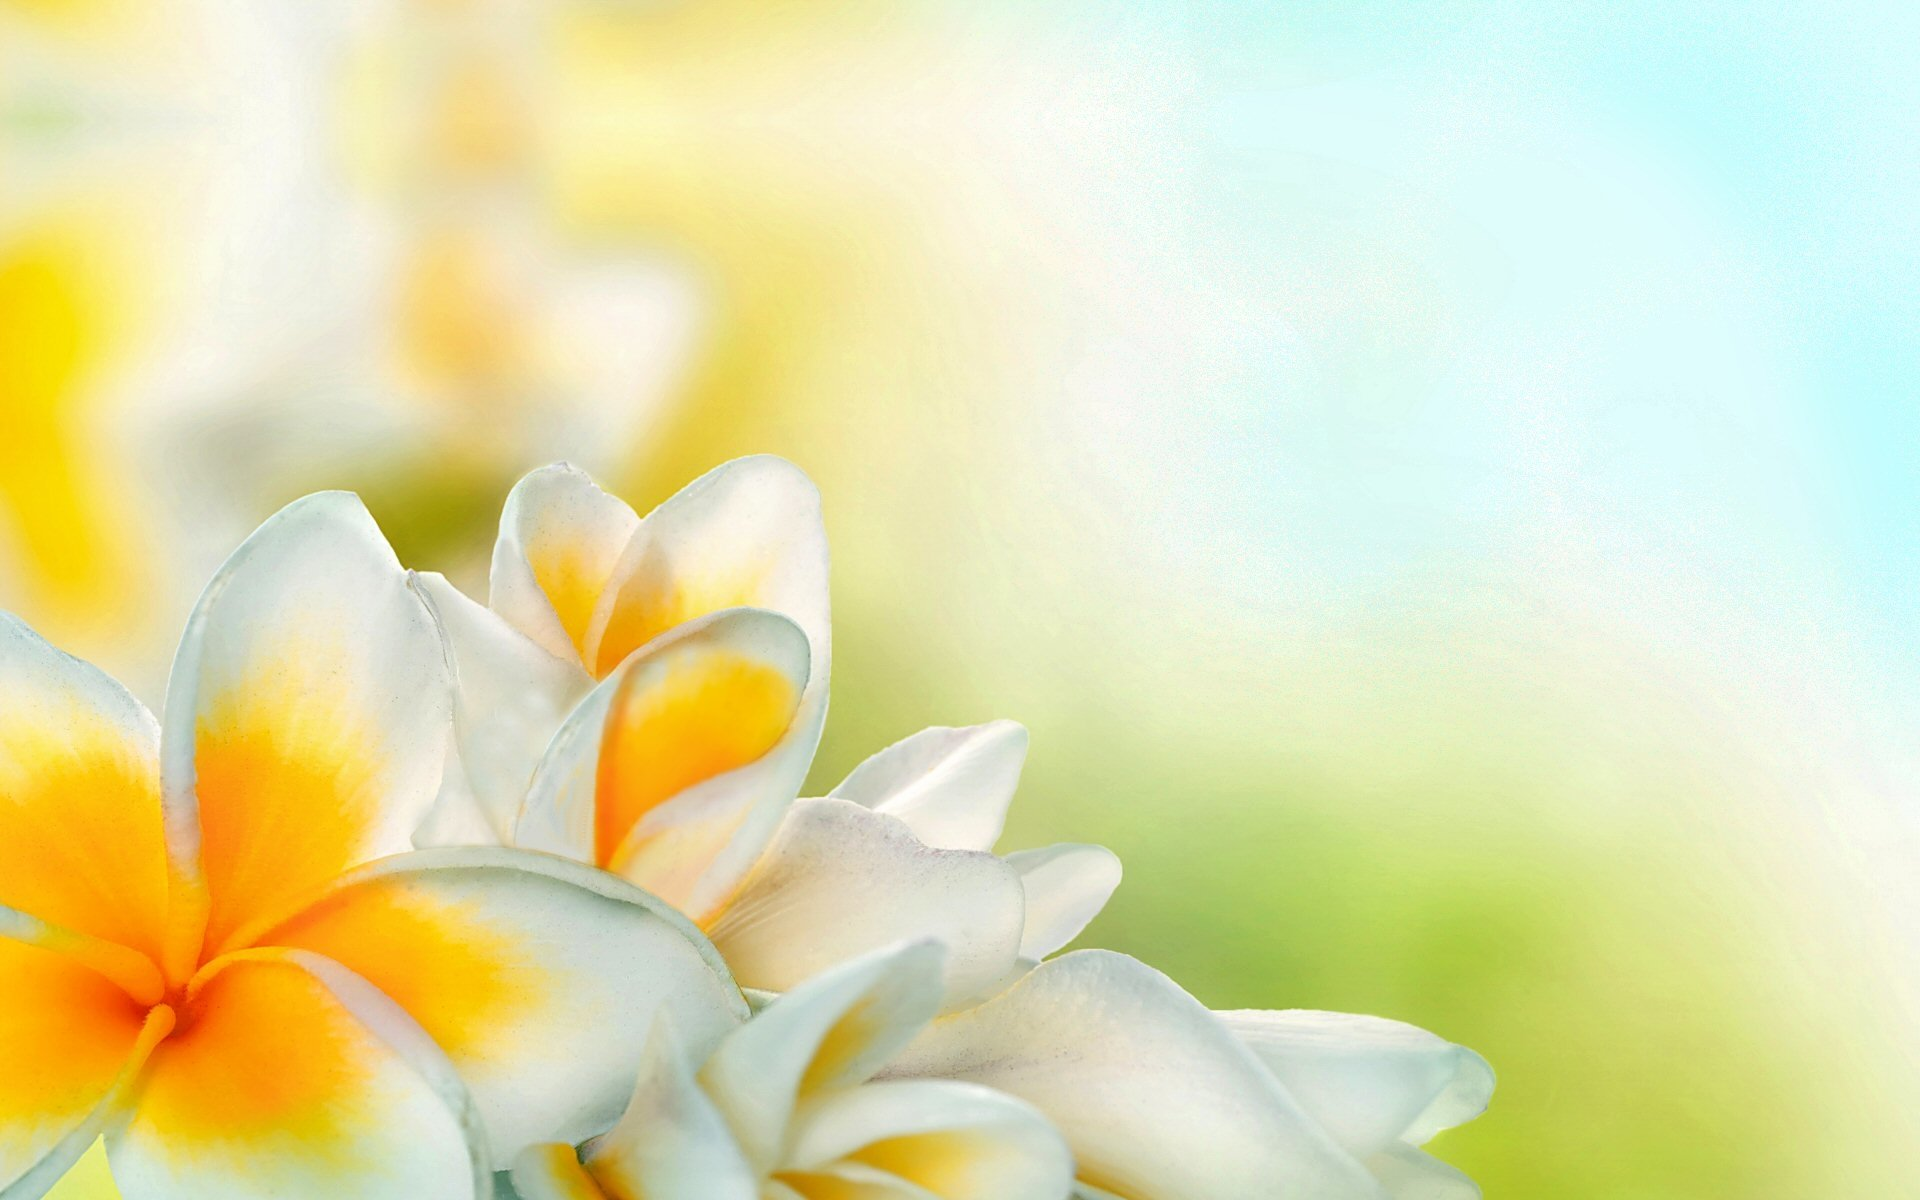 Earth - Frangipani  Petal White Flower Flower Spring Wallpaper